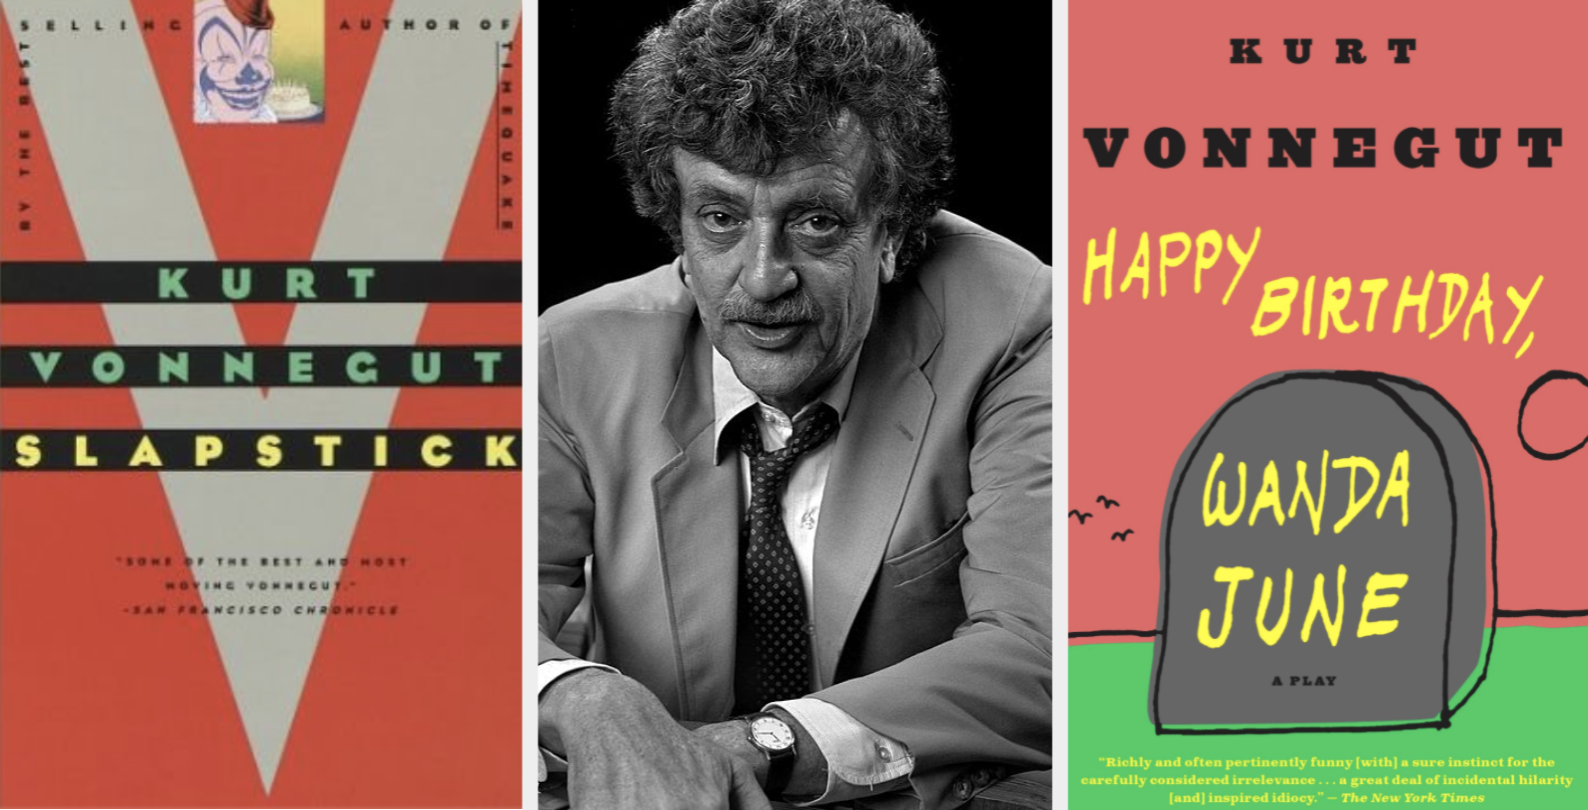 Slapstick and Happy Birthday, Wanda June with a picture of Vonnegut